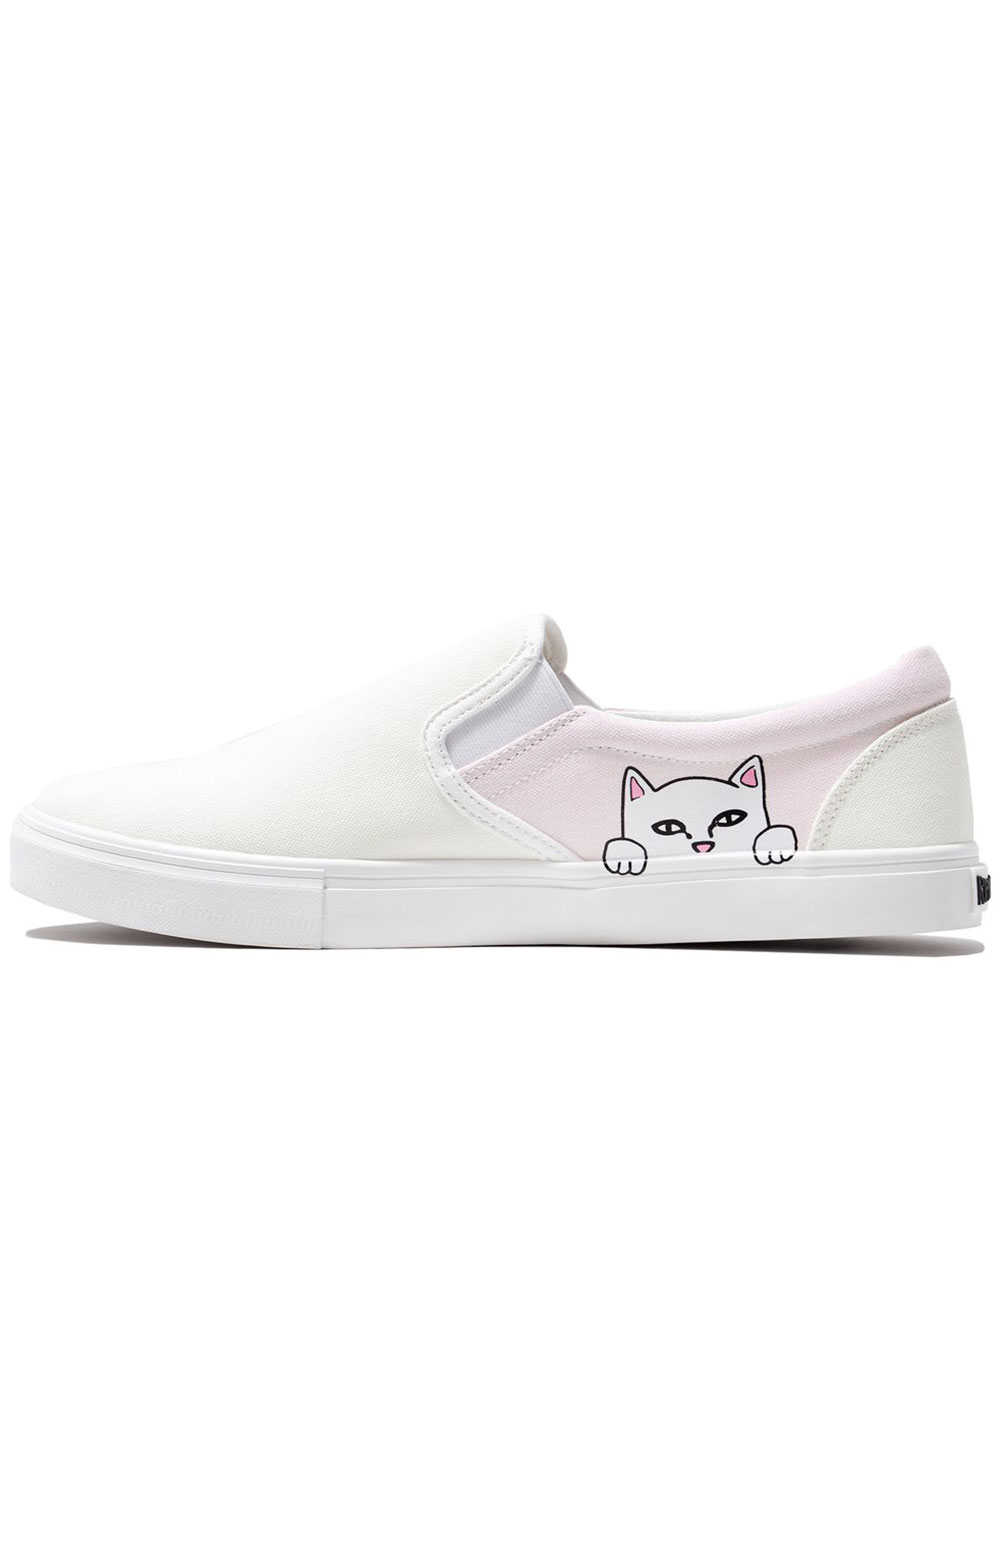 Lord Nermal UV Activated Slip-On Shoes - Blue/Fuschia